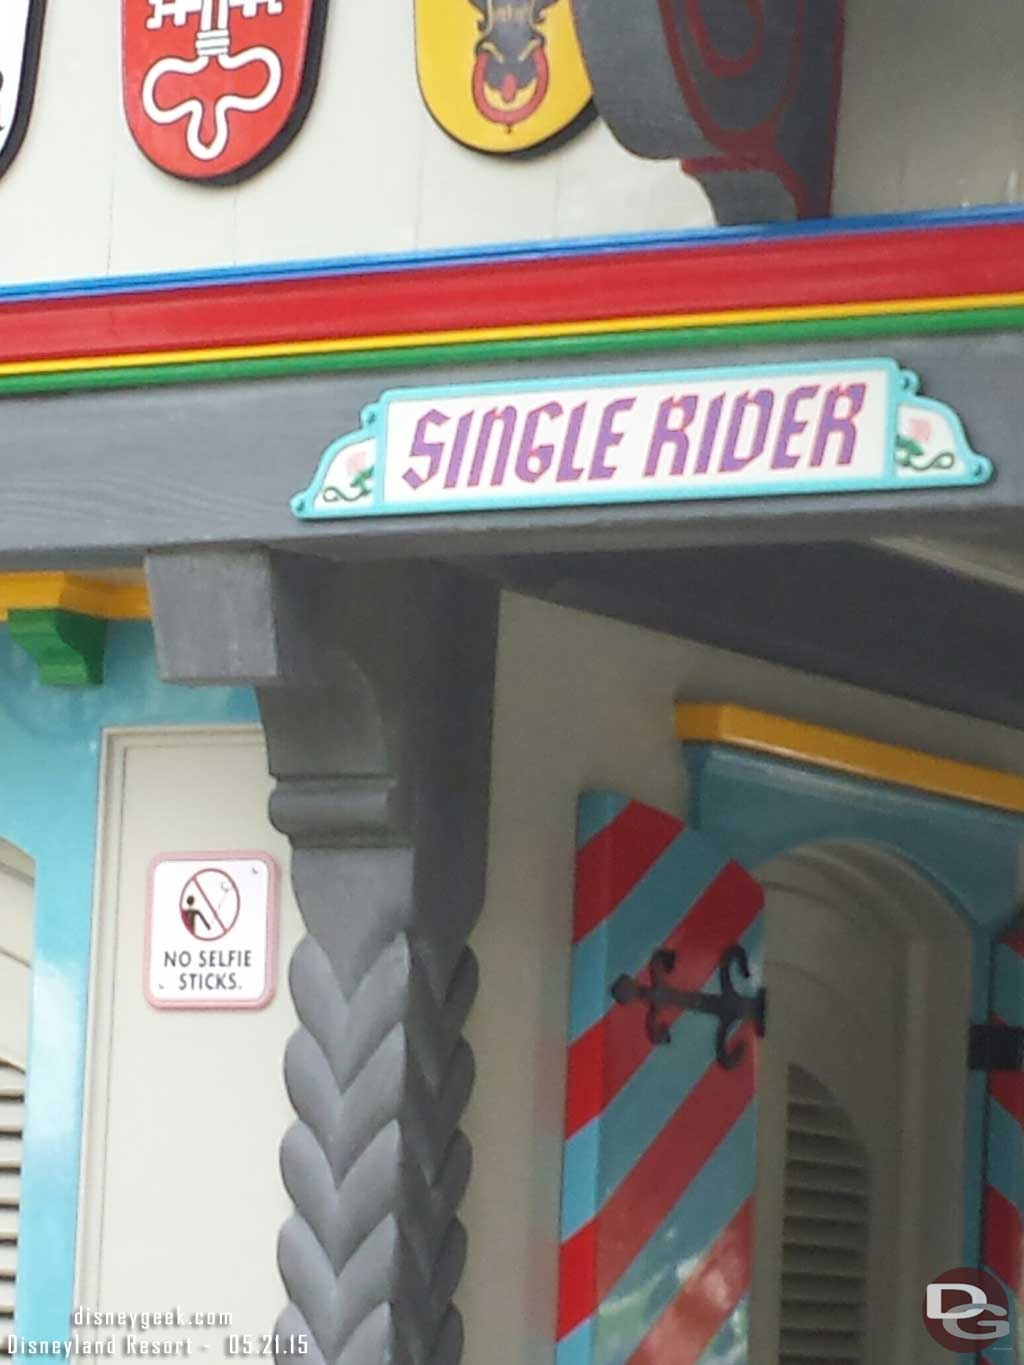 No selfie stick signs are being installed around #Disneyland this one at the Matterhorn